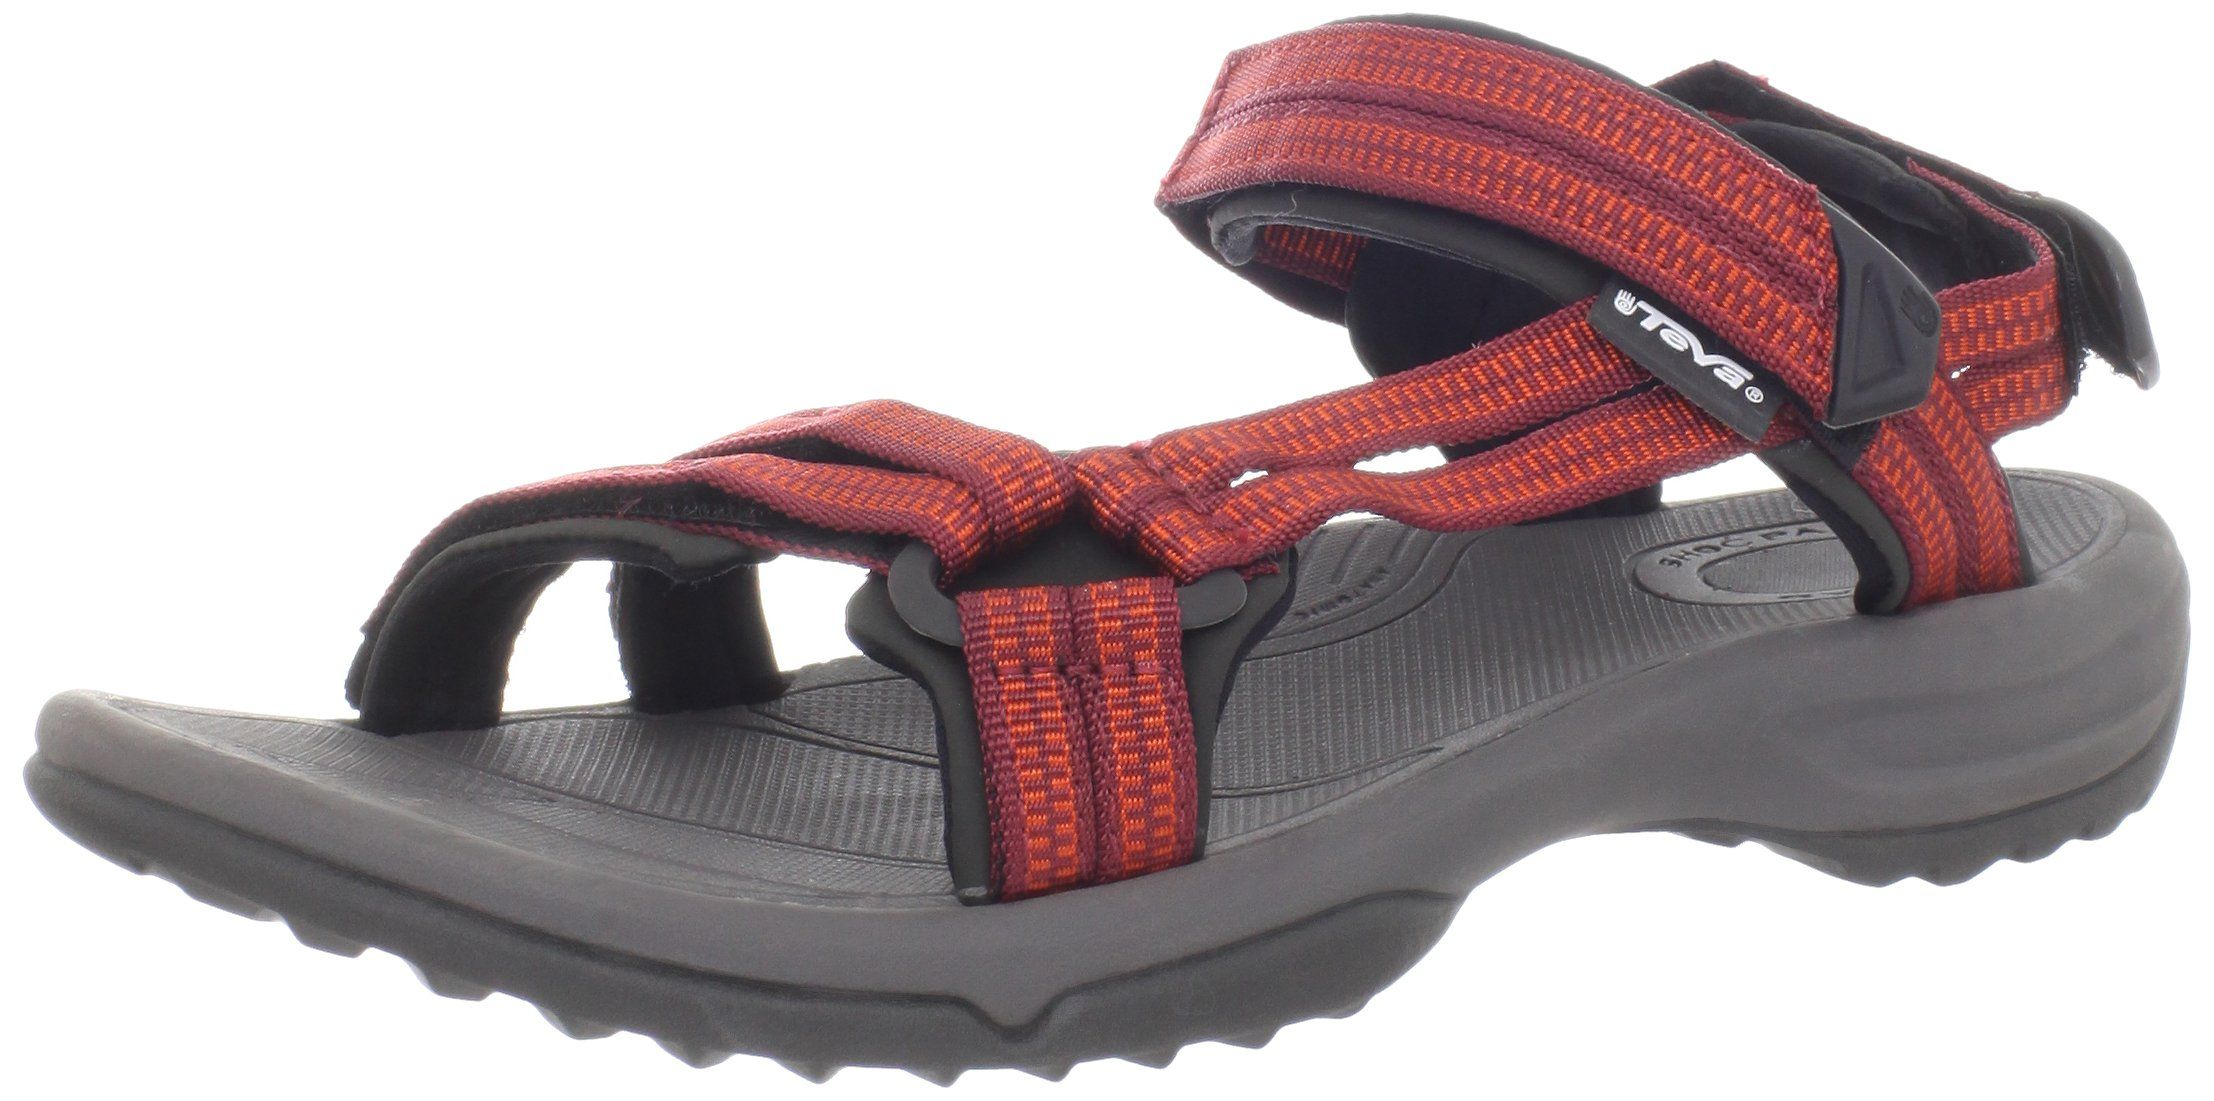 Teva | Buy Teva Shoes & Sandals Online | Frames Footwear